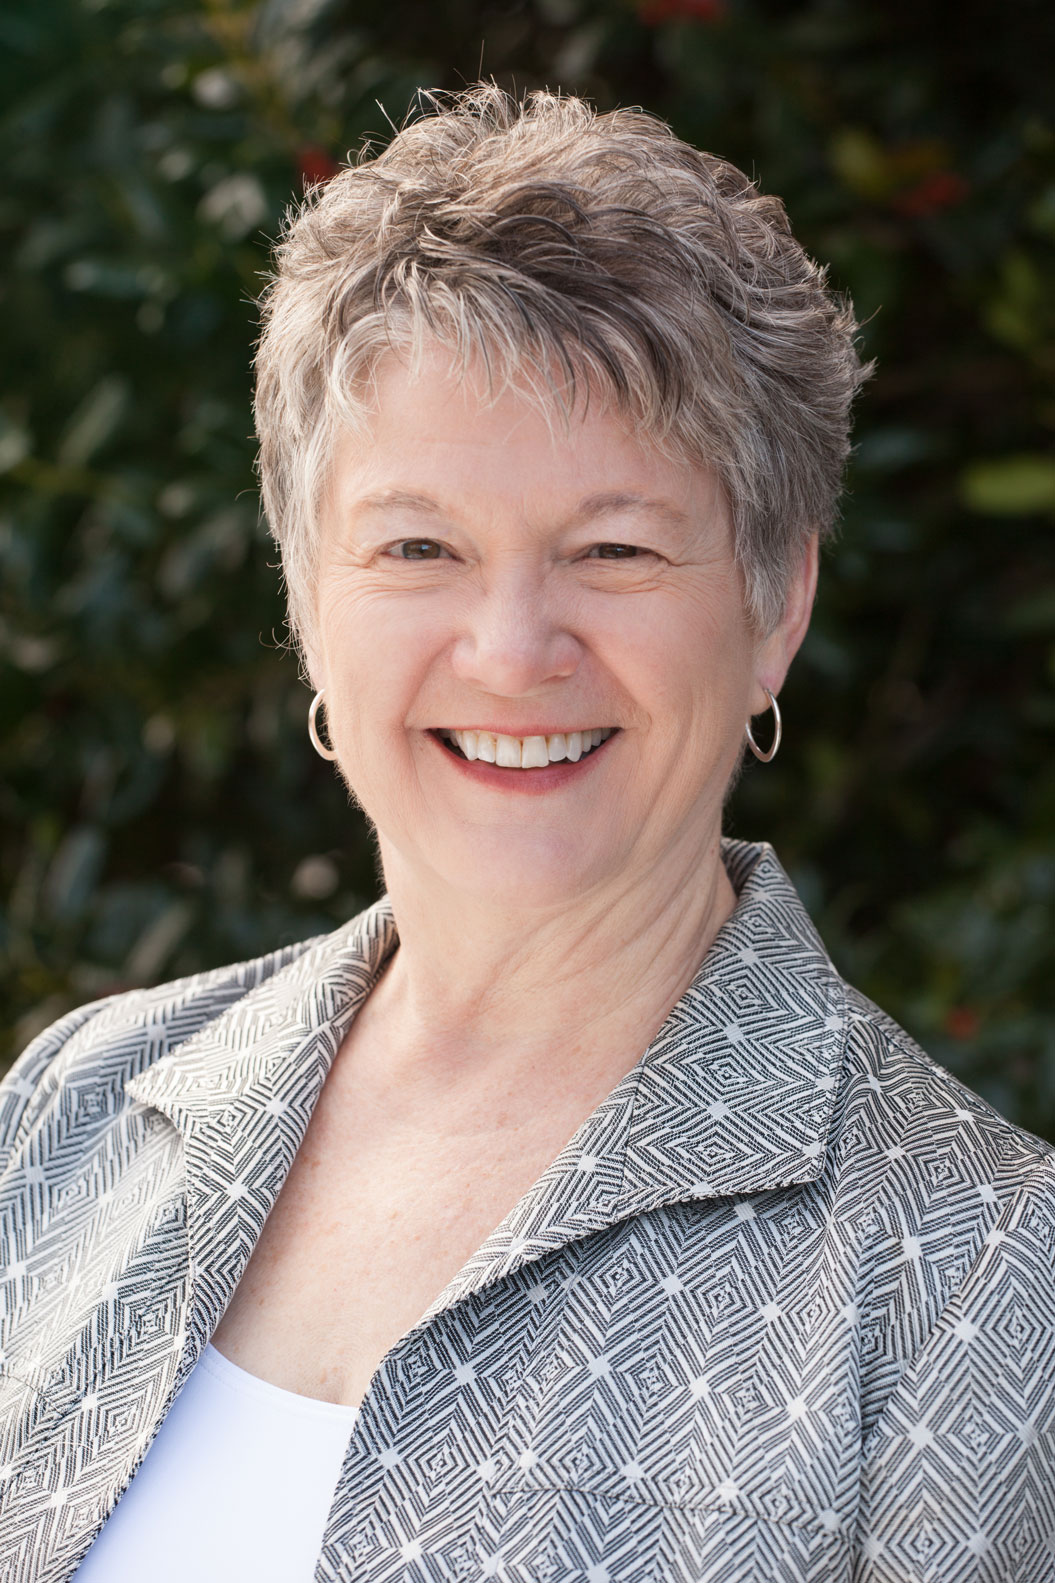 Photo of Lee Ann, Legal and Compliance specialist